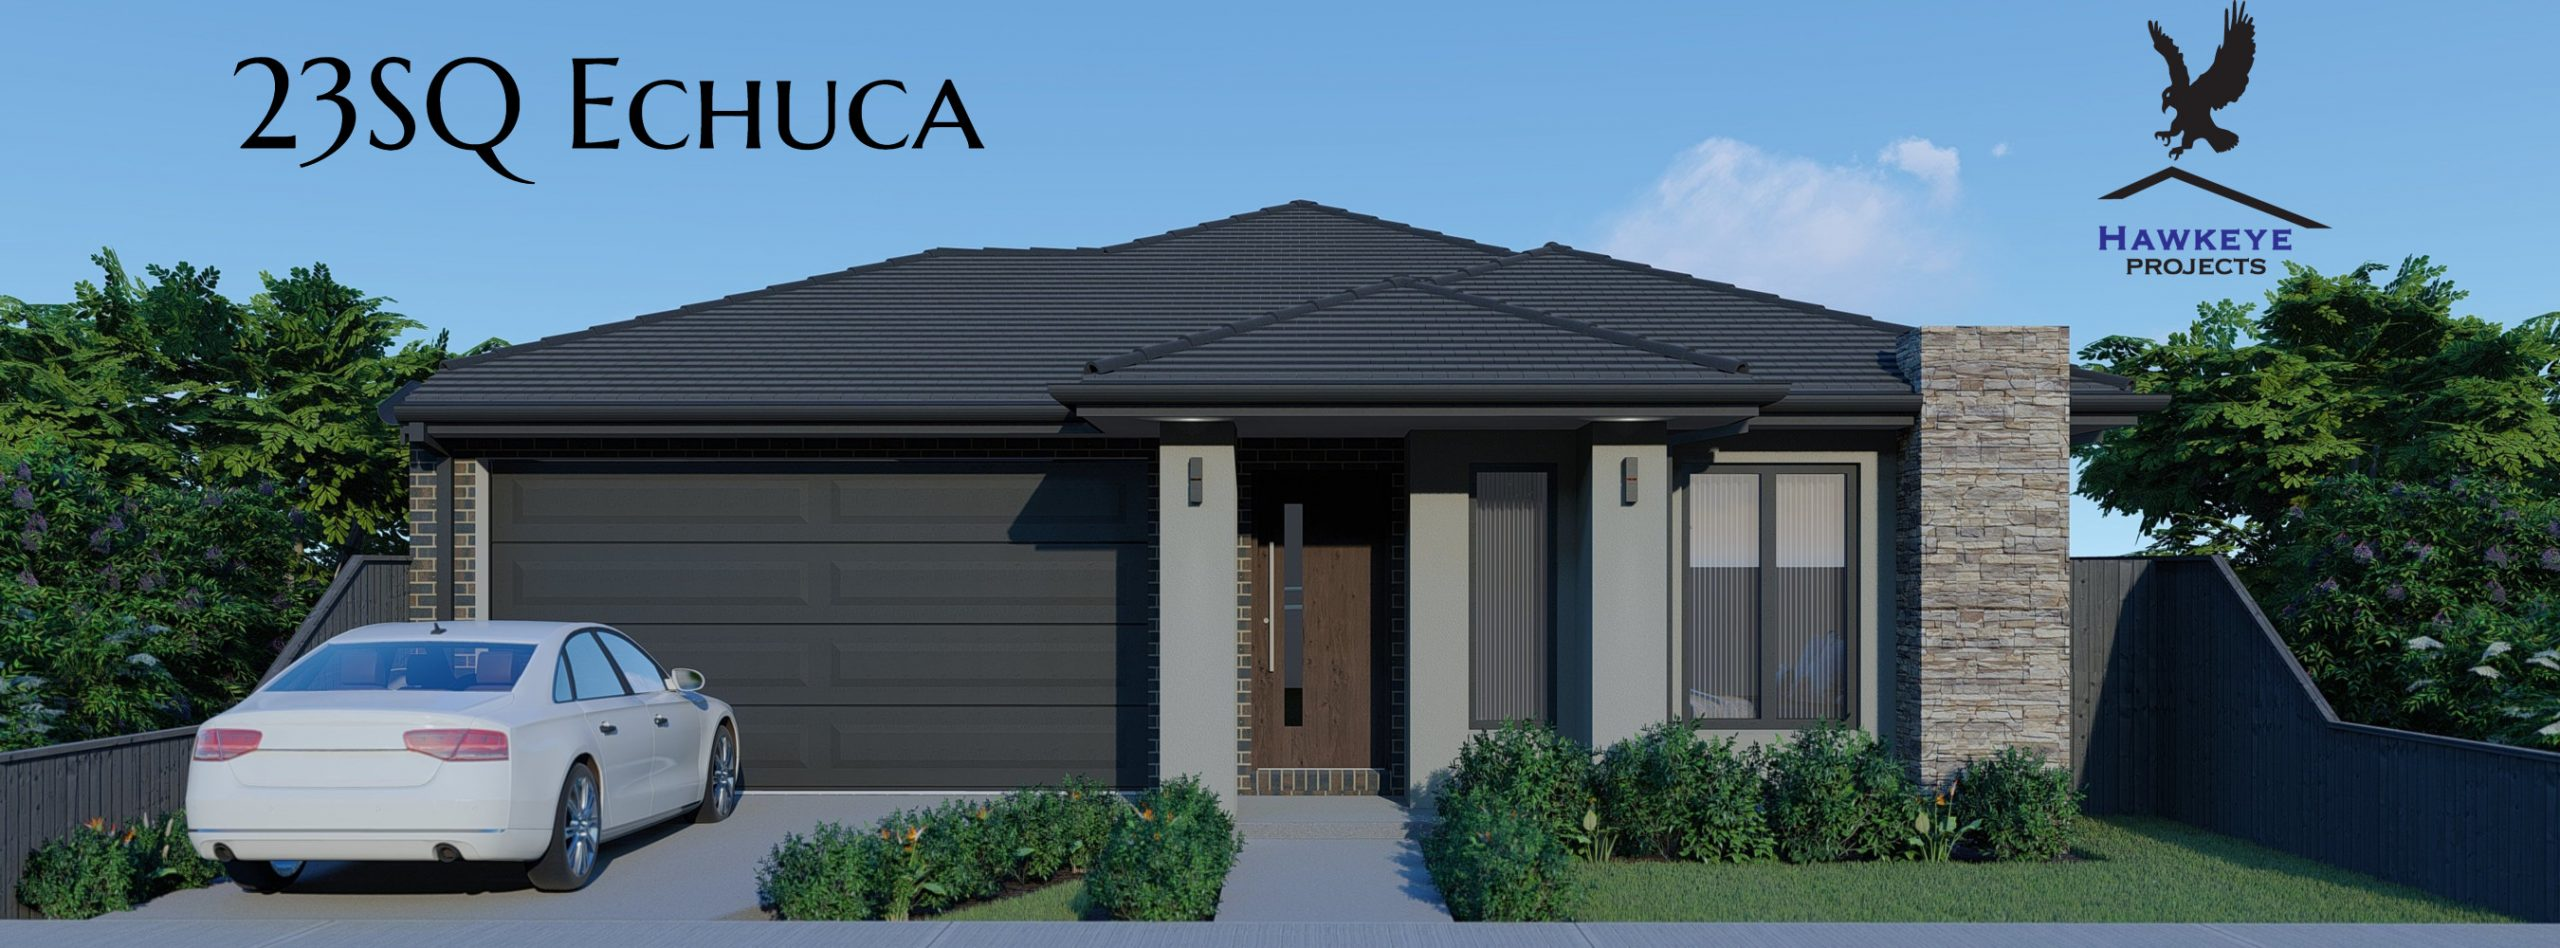 23Sq Echuca with Sandstone Feature